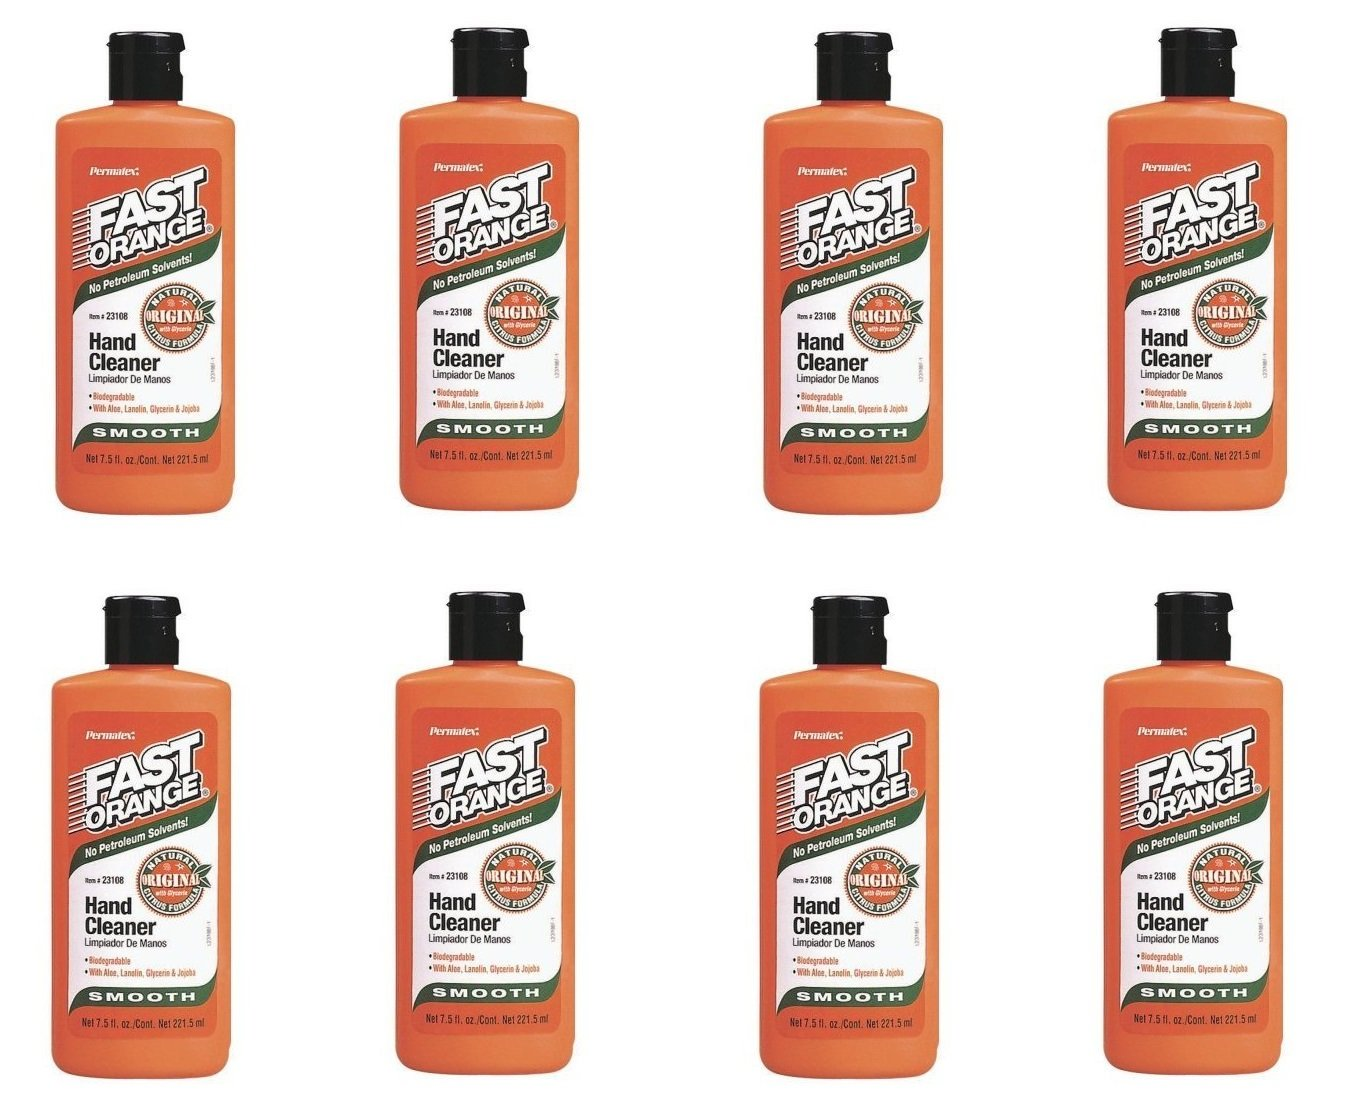 Permatex ® 23108 Fast Orange Smooth Lotion Hand Cleaner - 7.5 oz Bottle (8)